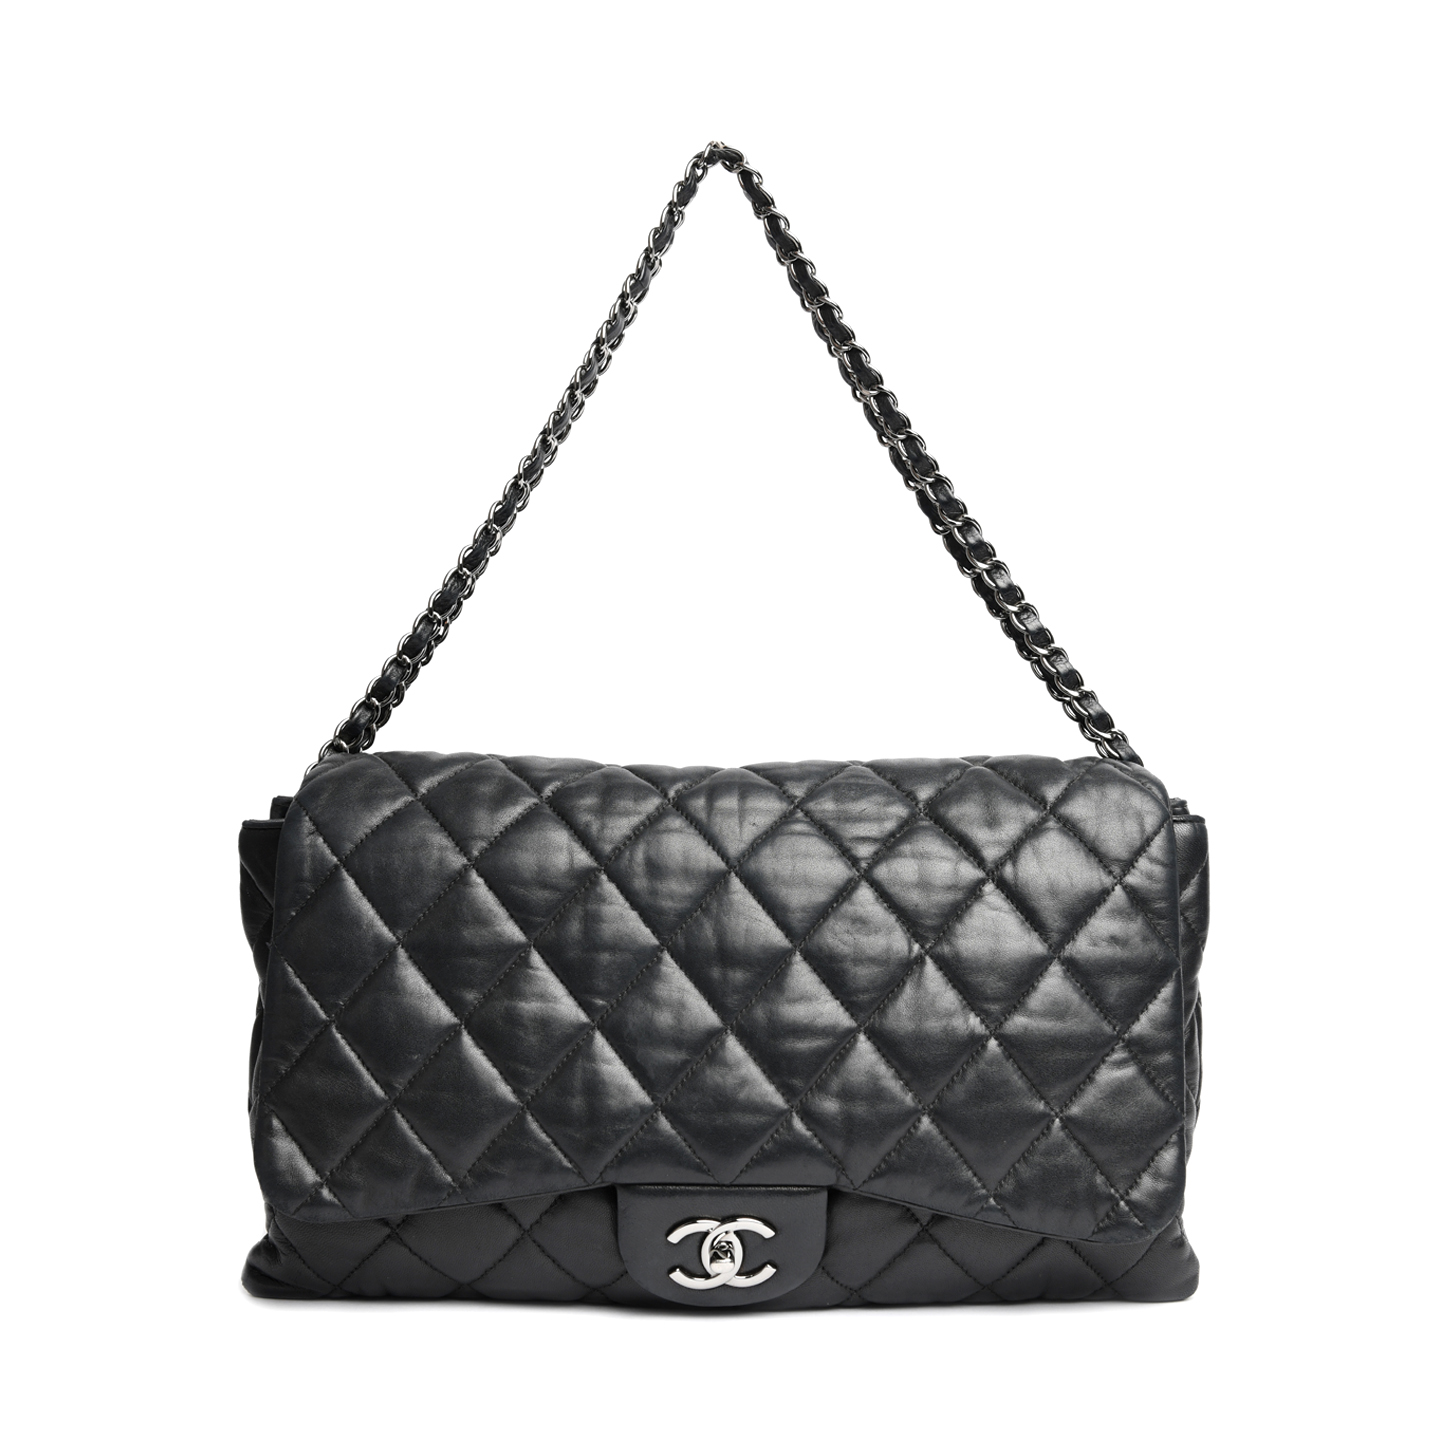 4bcdaf40c8e1 Chanel Lambskin Leather 3 Accordion Maxi Flap Bag - LabelCentric